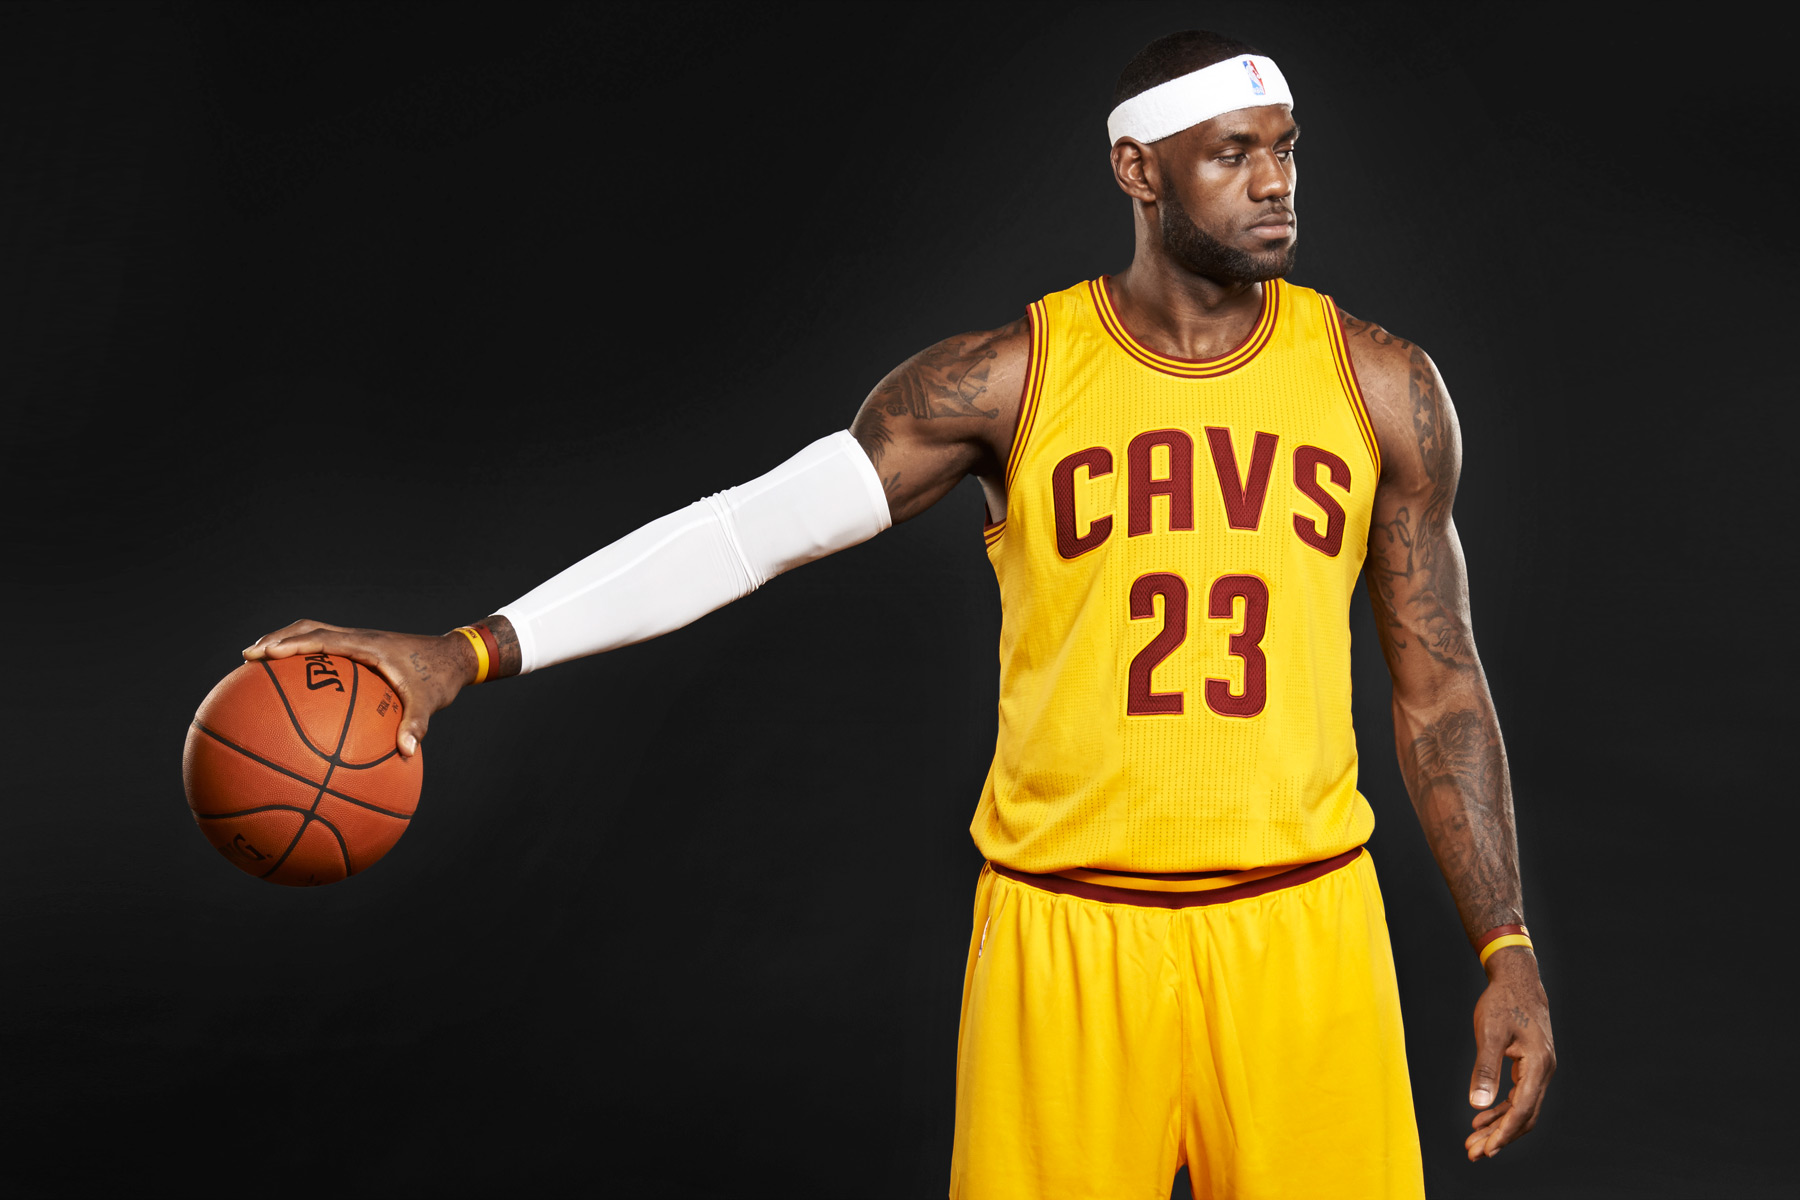 tom-medvedich-portraits-slam-lebron-james-01.jpg